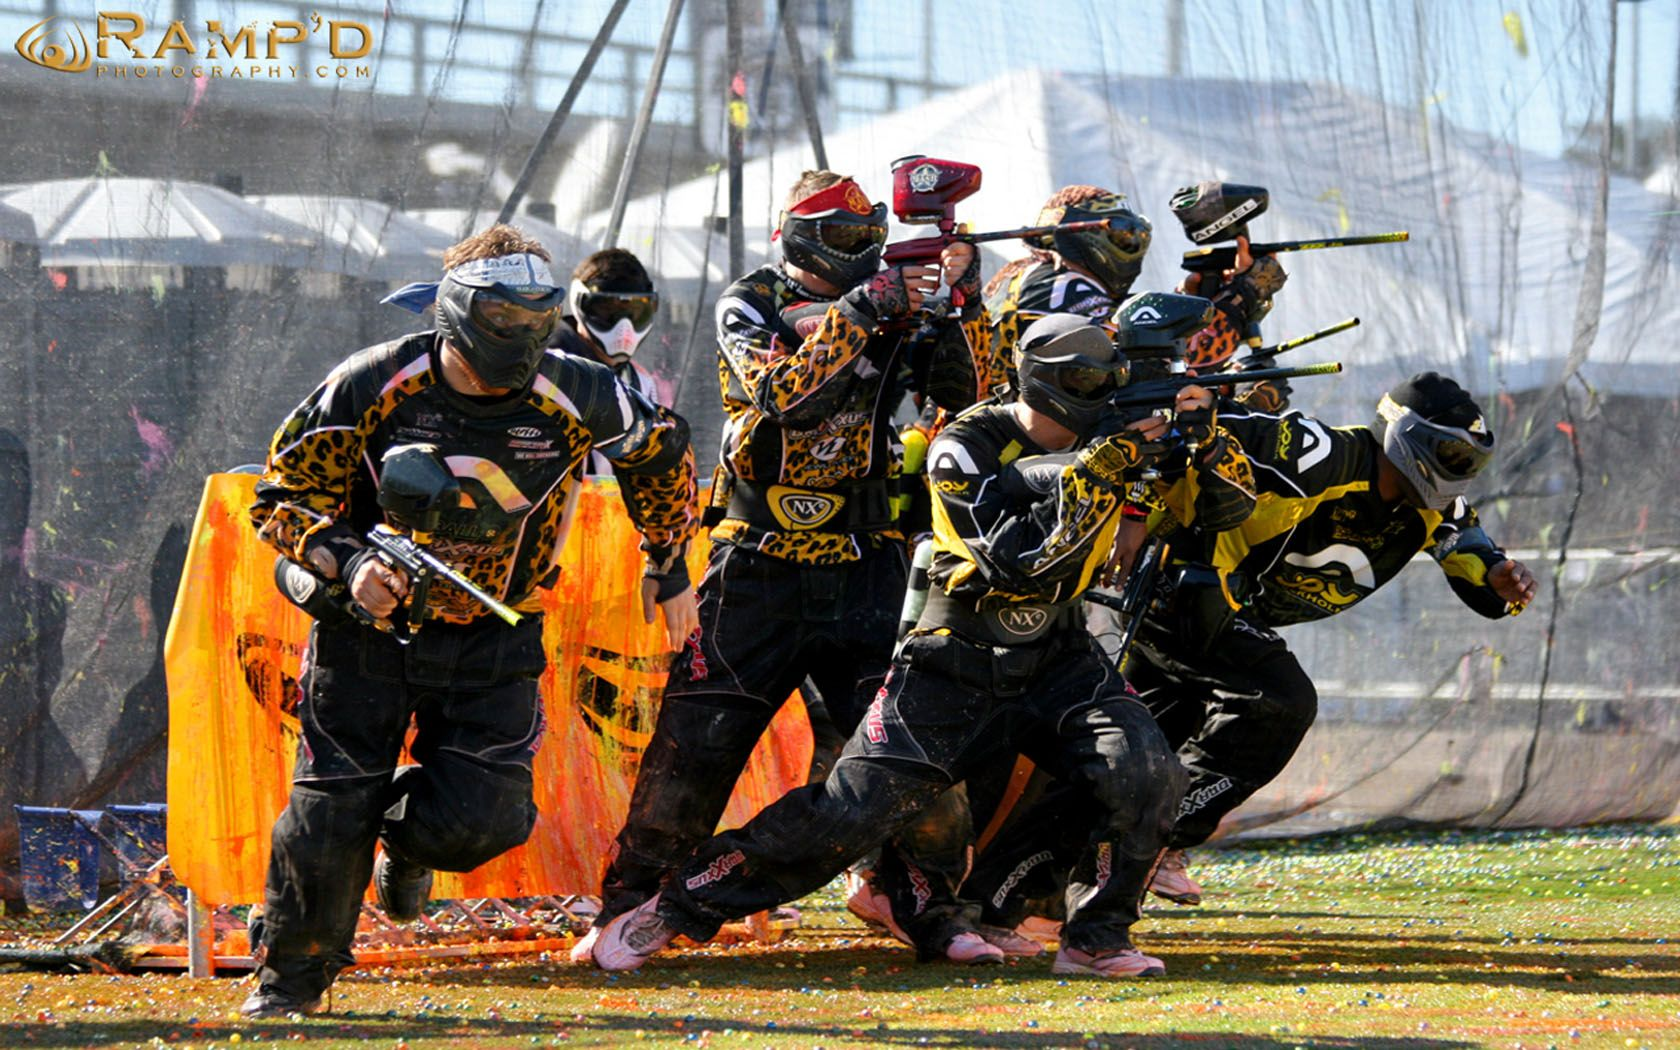 Wallpapers Paintball Category Wallpaper Sports Leisures 1024 768 Paintball Wallpaper 44 Wallpapers Adorable W Paintball Paintball Girl Outdoors Adventure